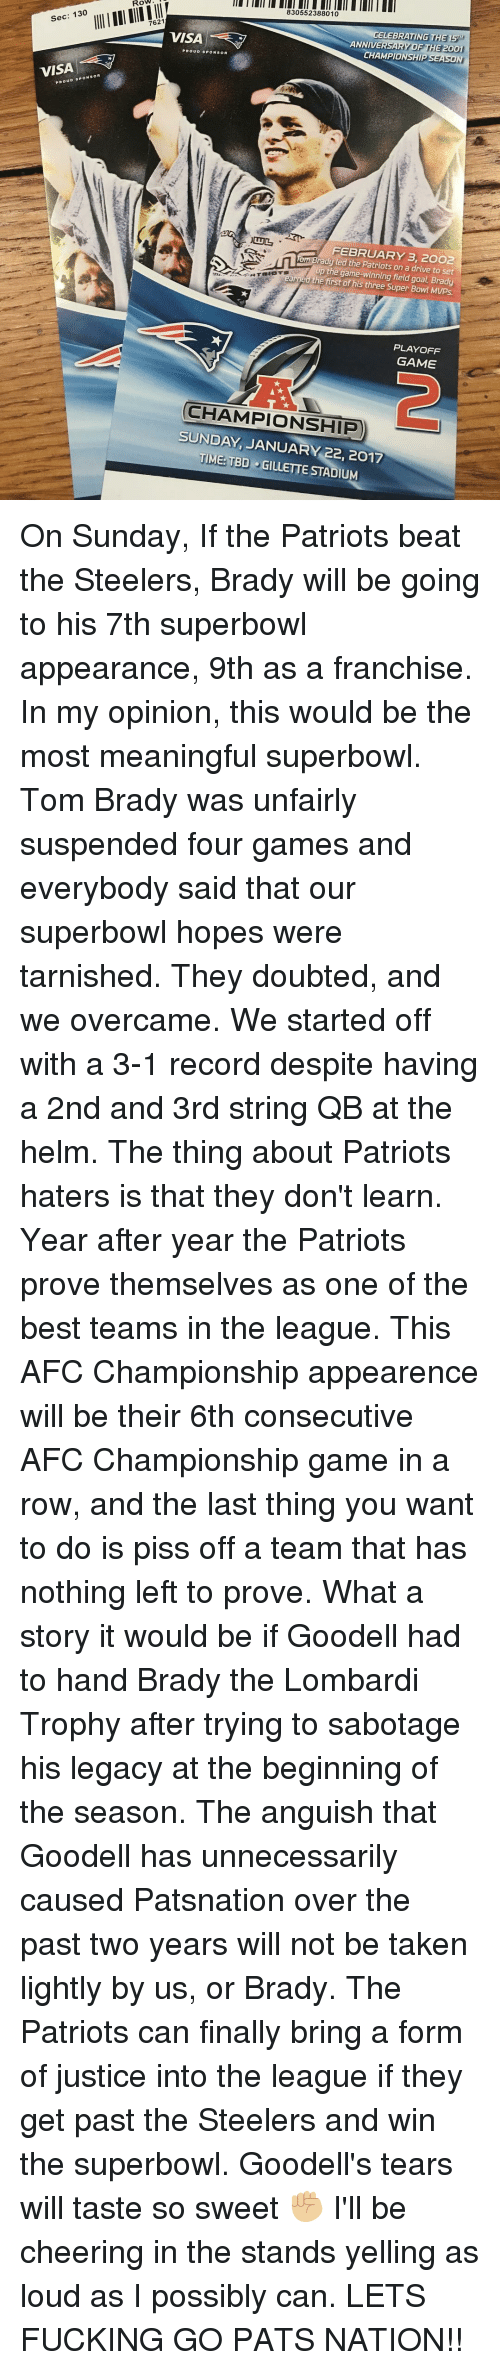 Patriots Haters